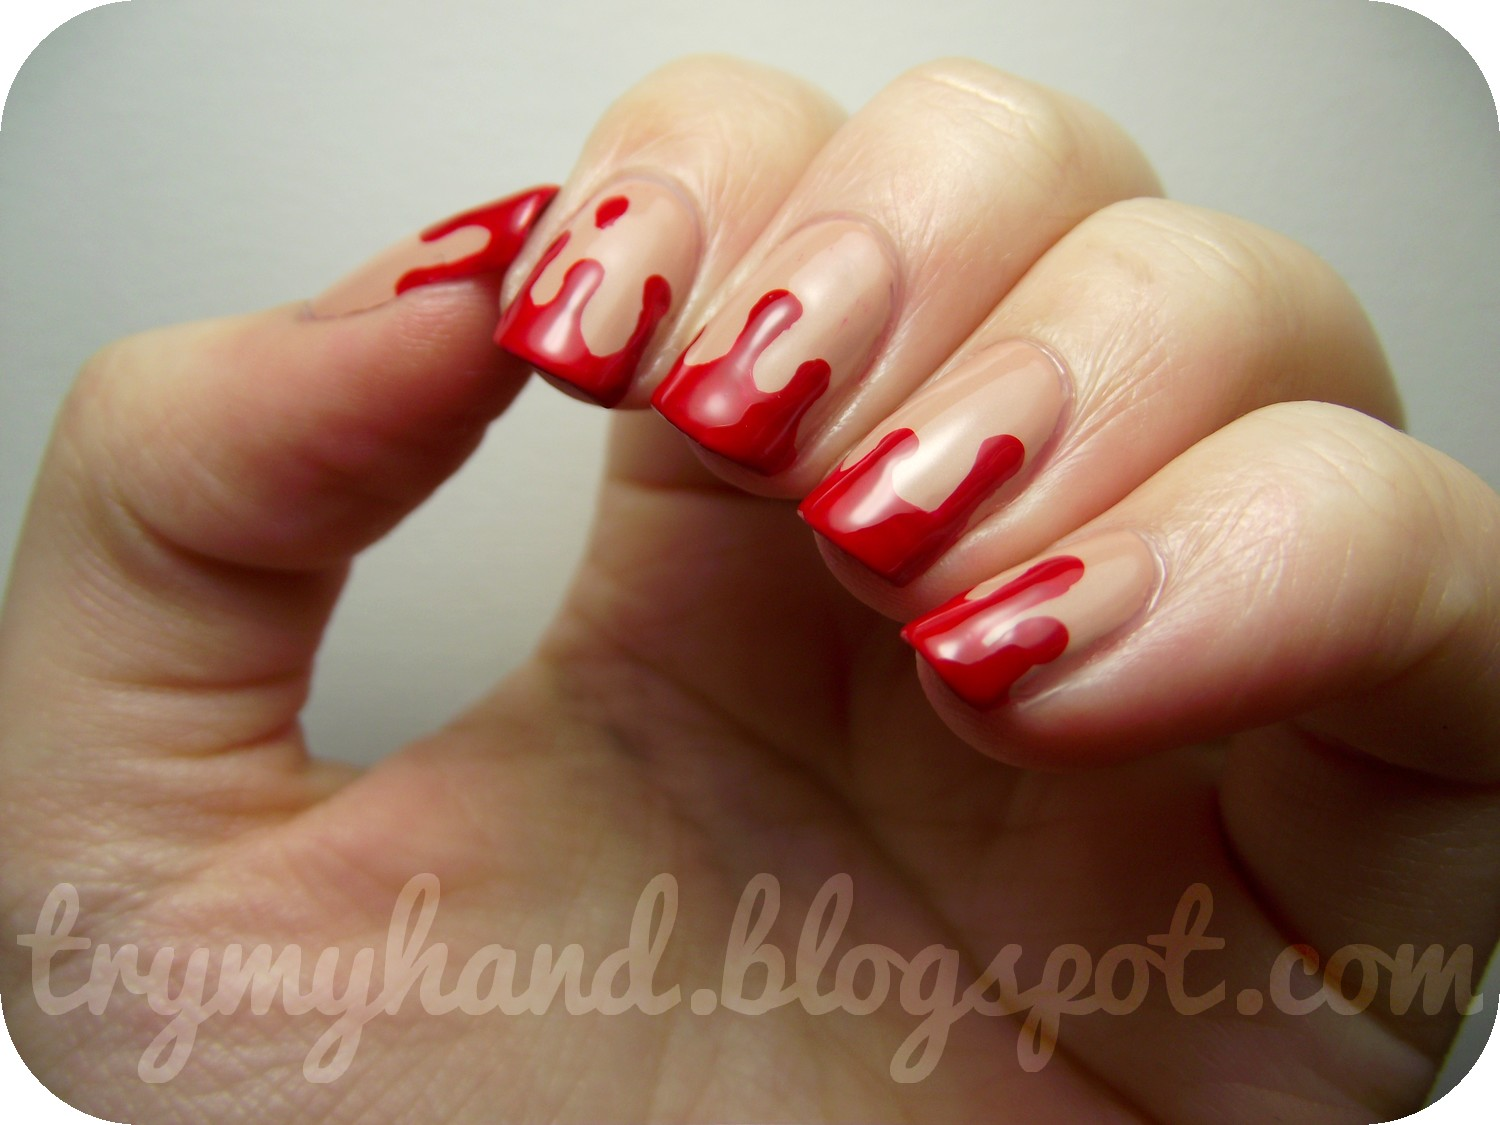 Try My Hand: Halloween Nails : Blood Drips